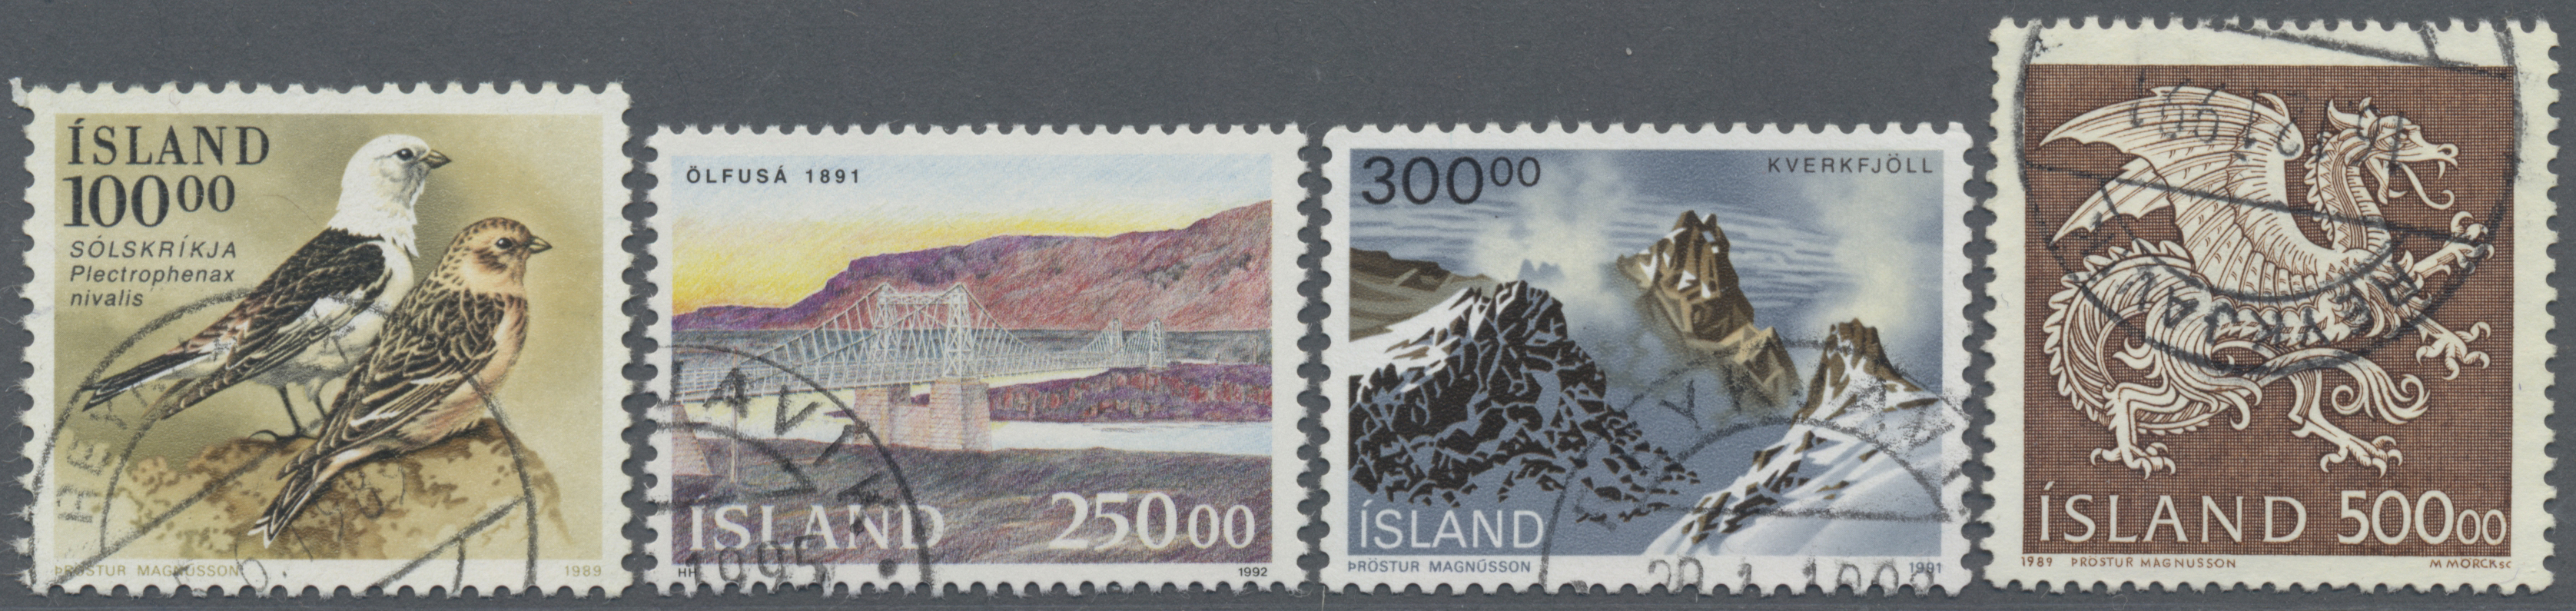 Lot 31871 - island  -  Auktionshaus Christoph Gärtner GmbH & Co. KG Sale #44 Collections Overseas, Europe